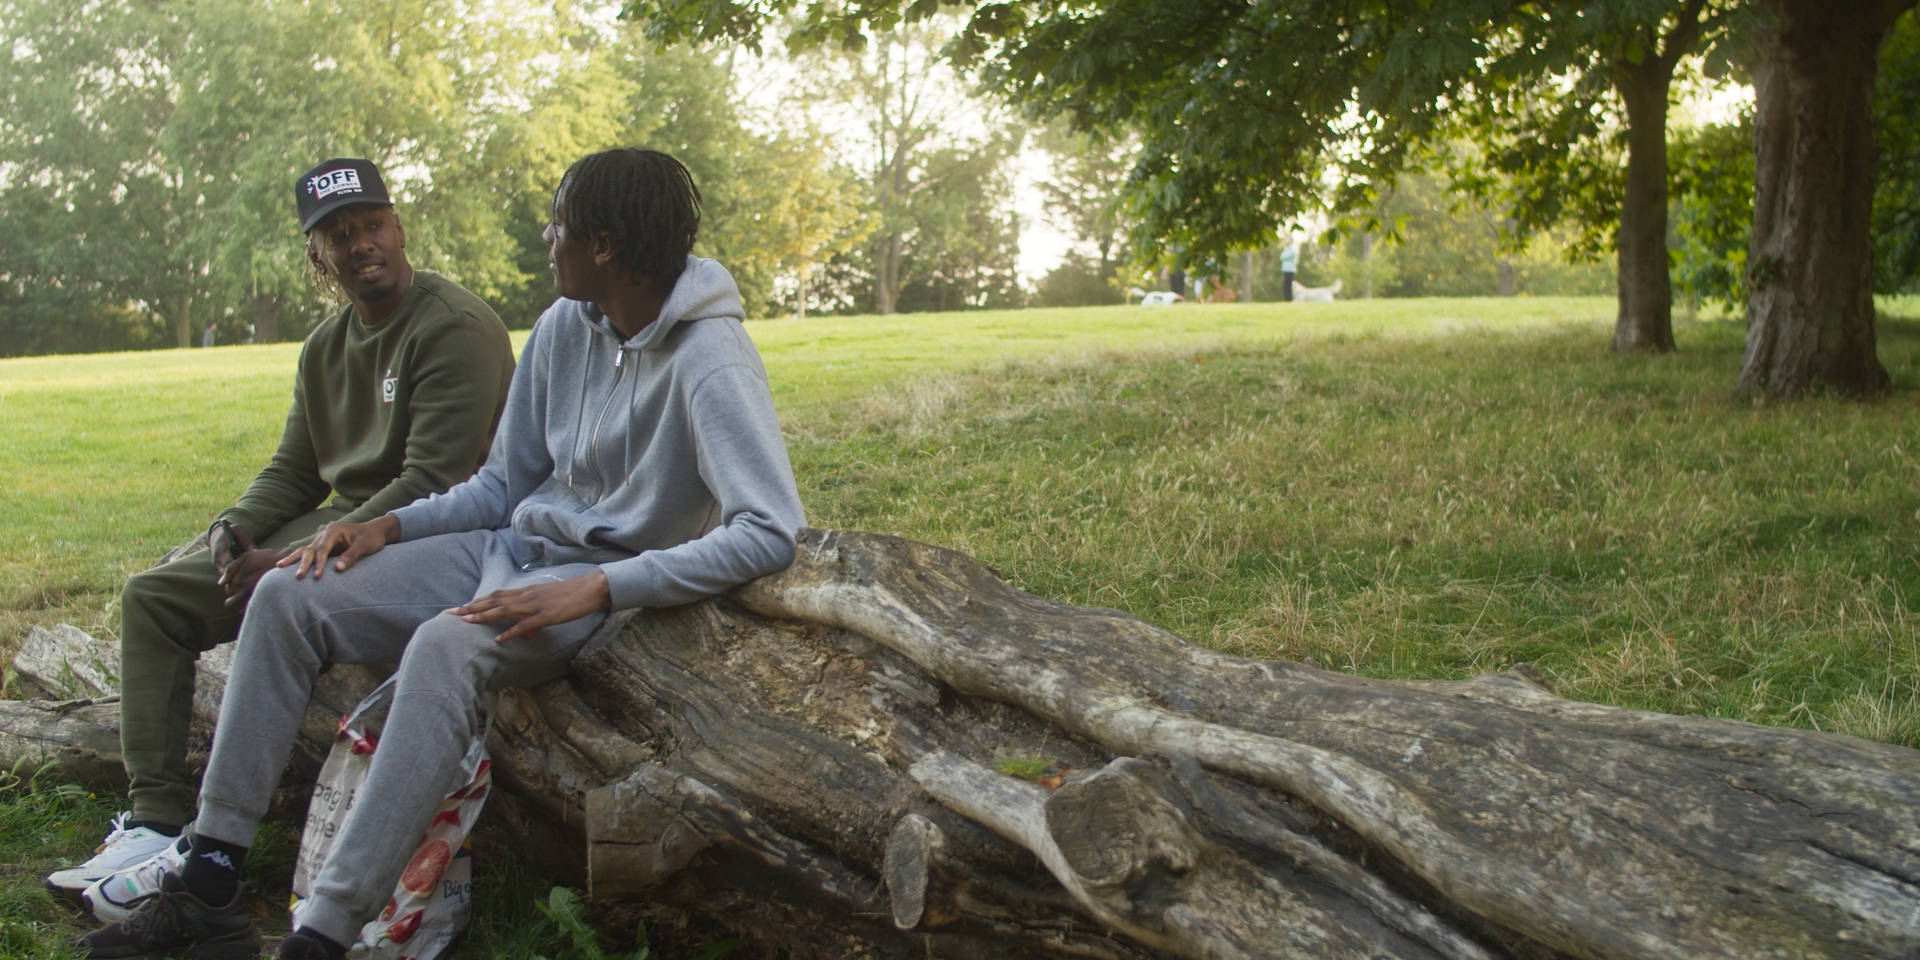 Still from short film Brother's Keeper, directed by Tobore Dafiaga featuring Louis Nicholson and Andre Burton-March